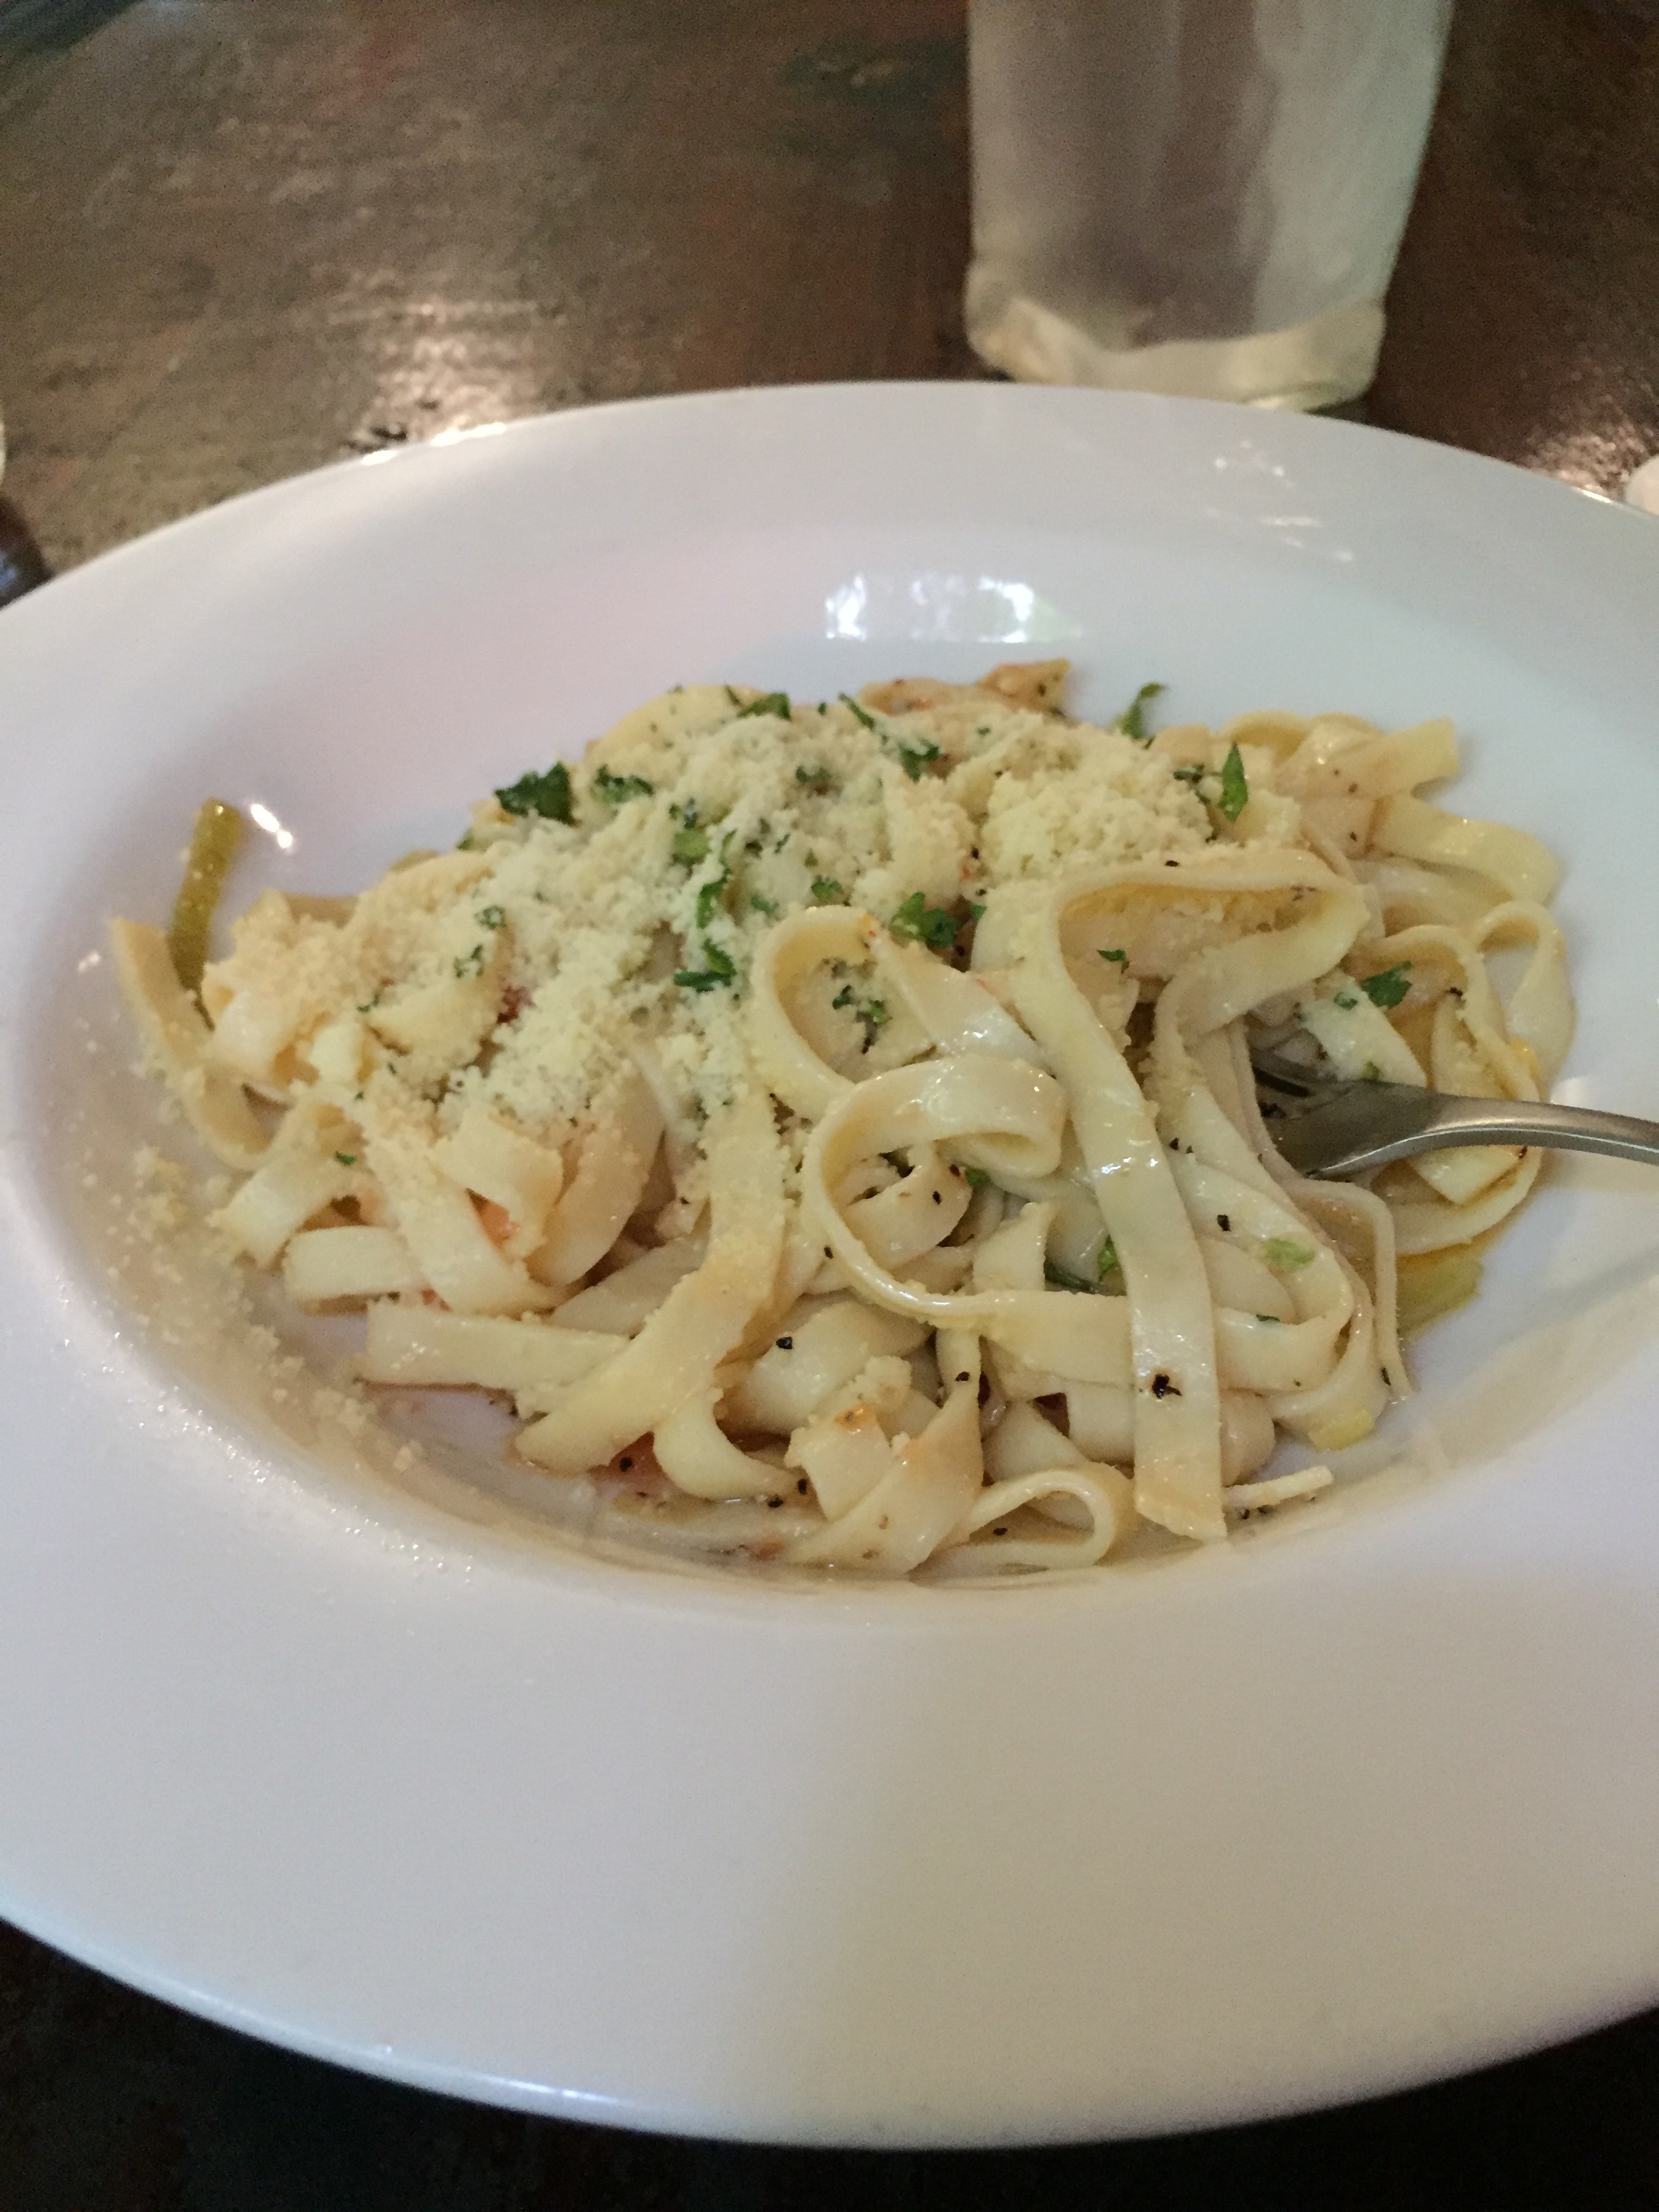 Linguine Pasta in the Daintree Rainforest